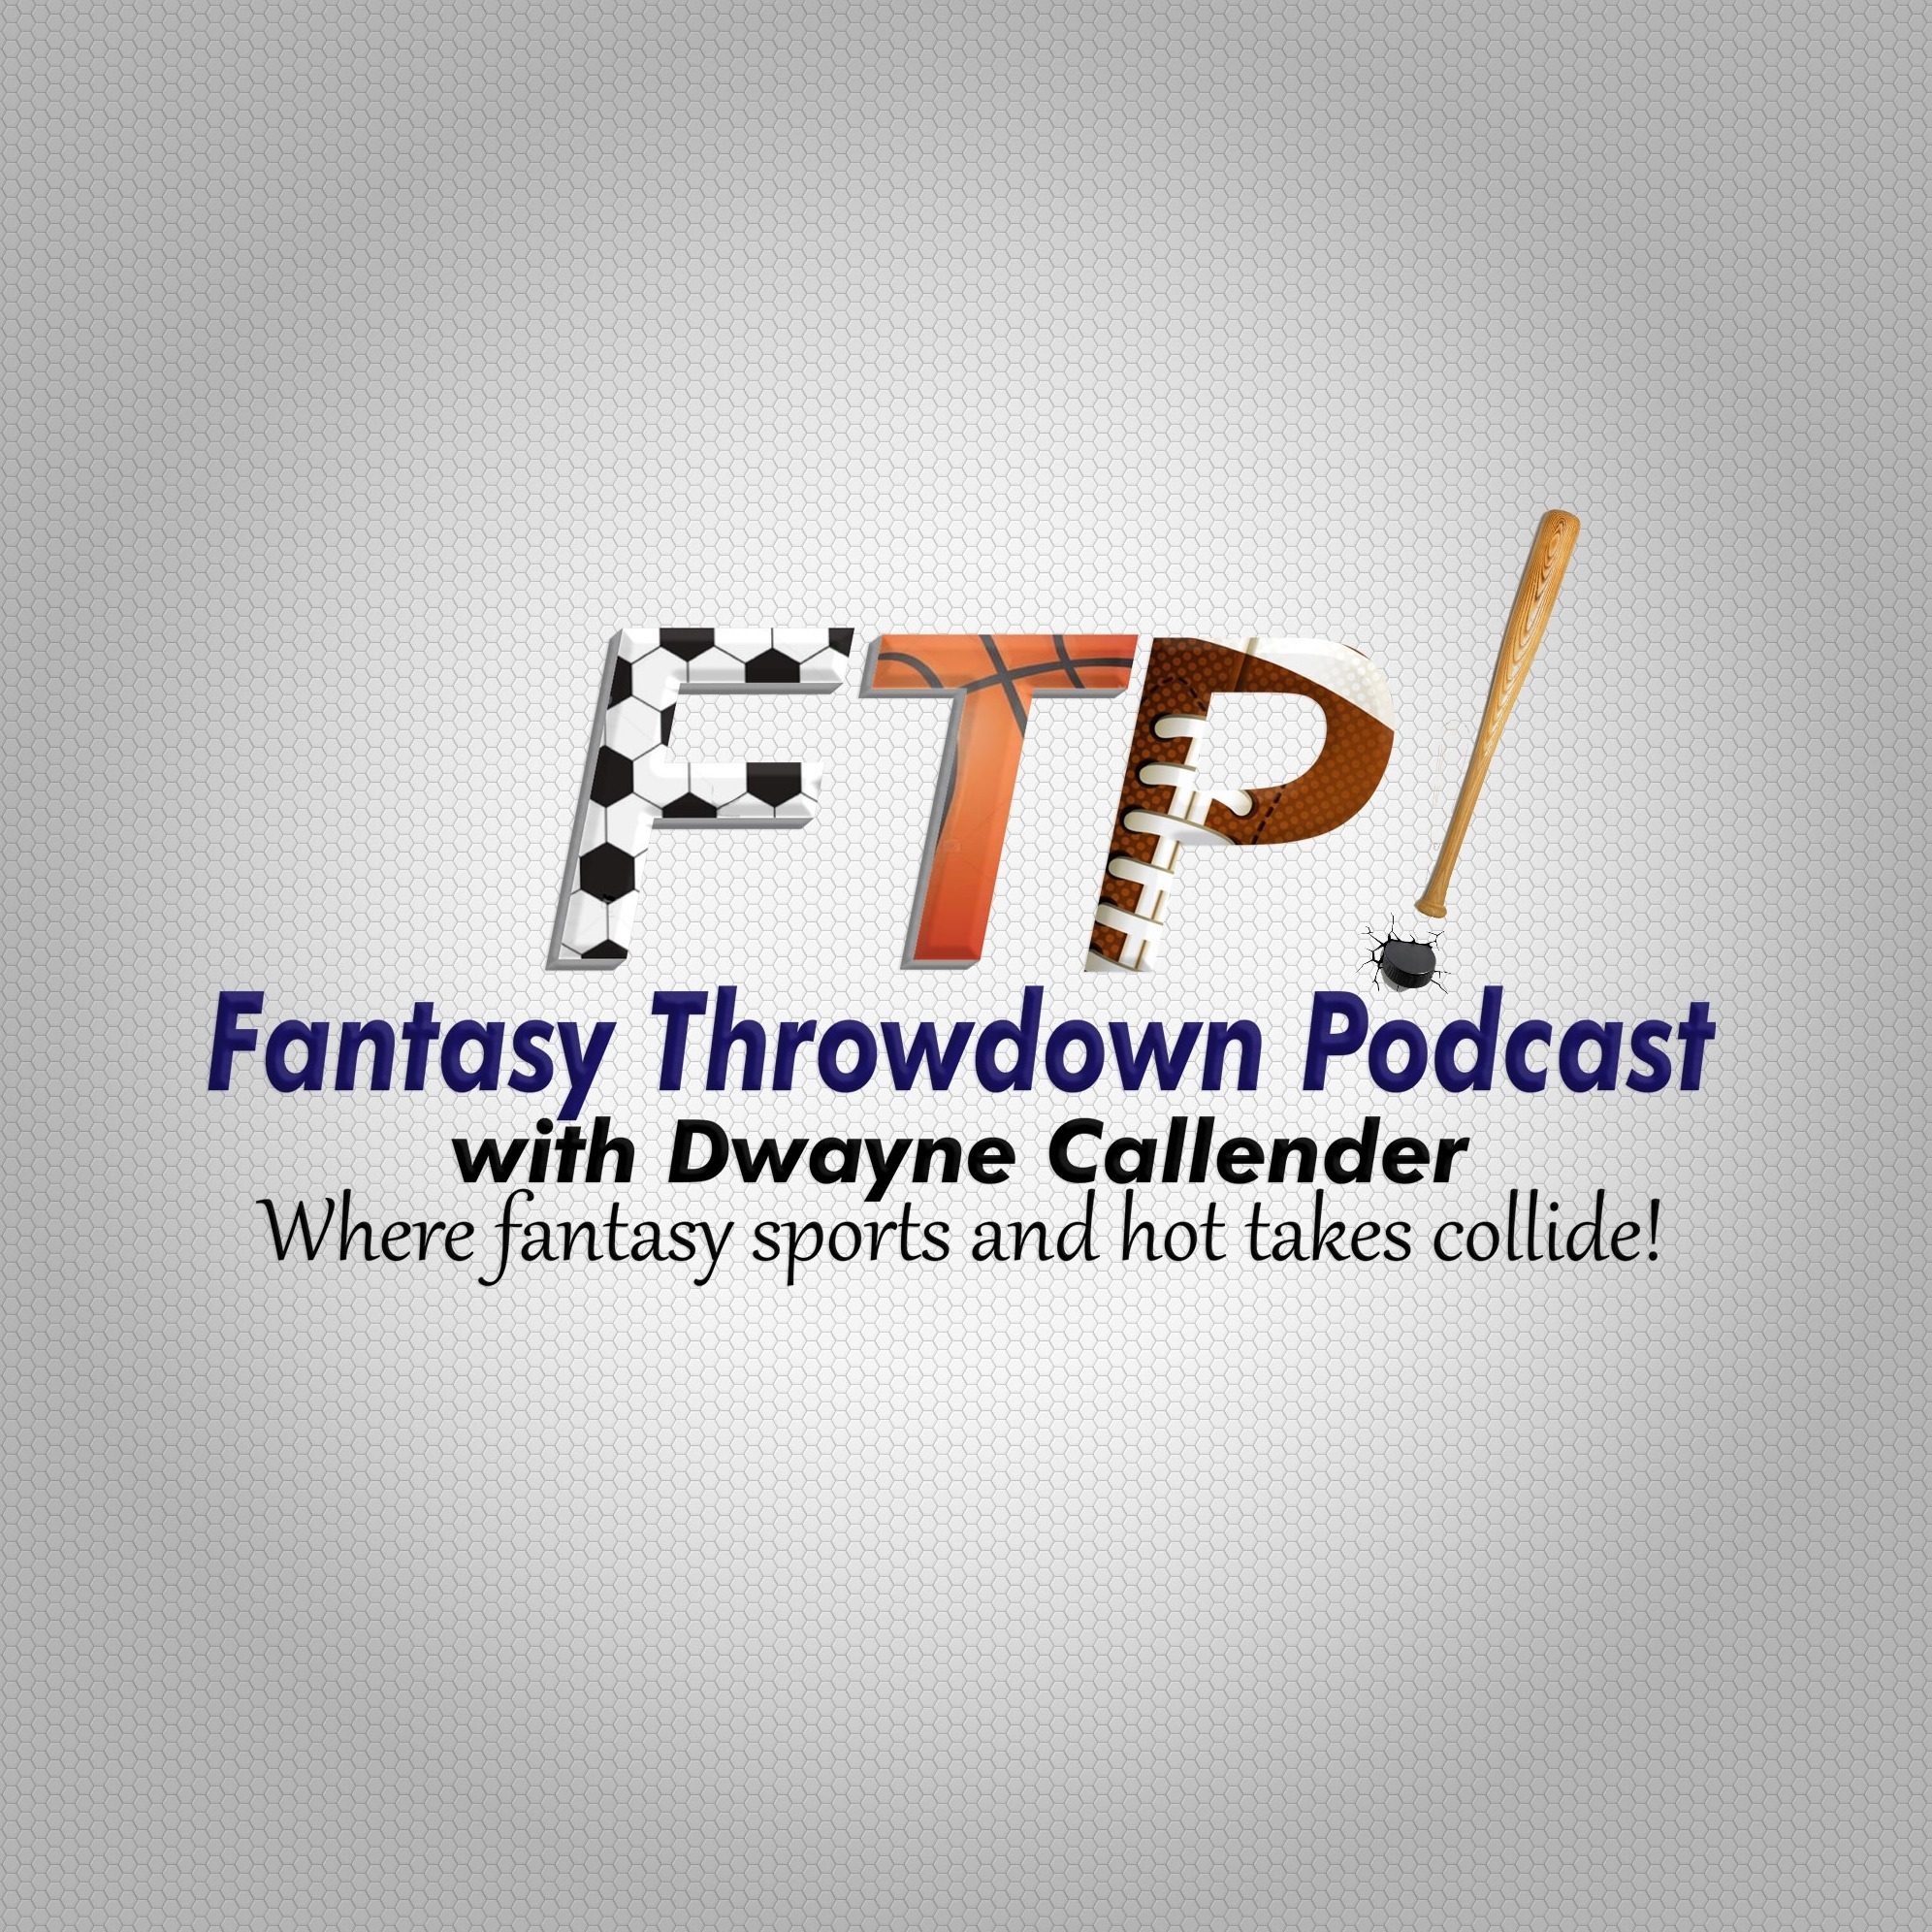 Fantasy Throwdown Podcast